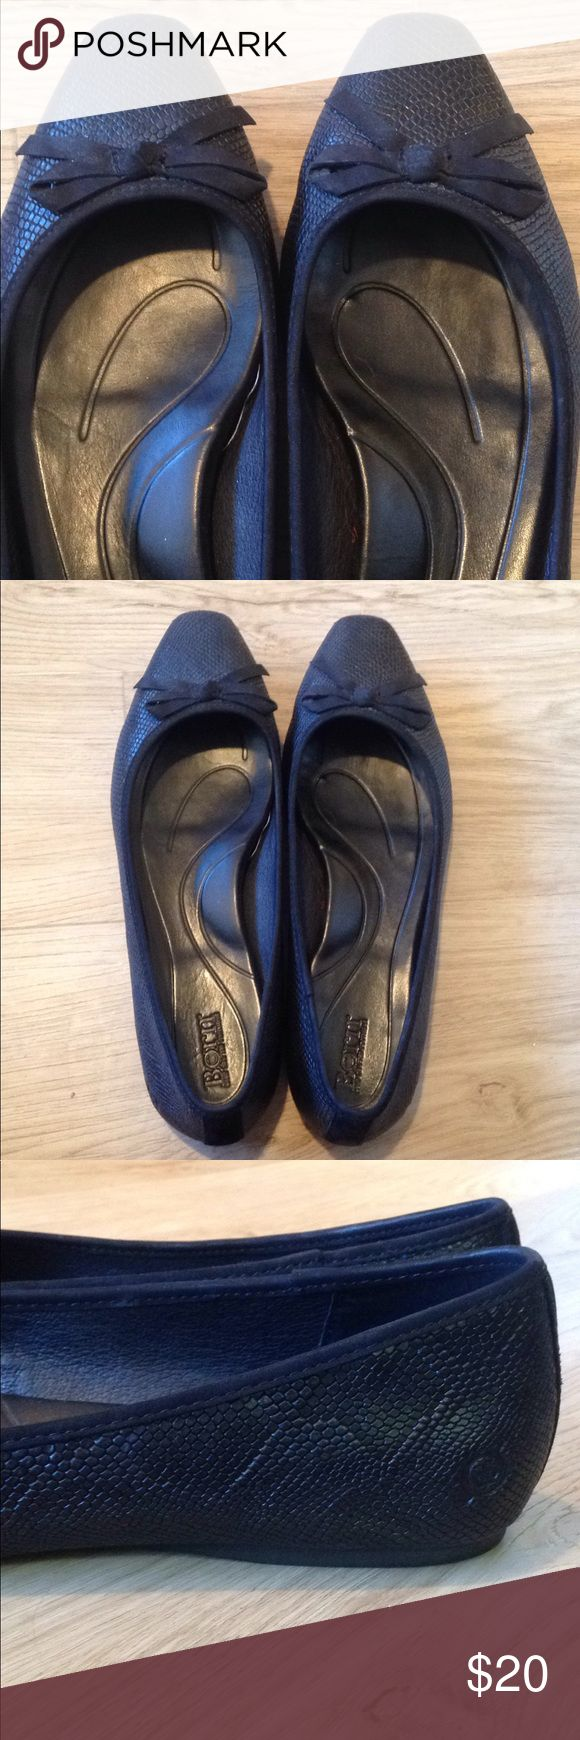 Born Black Flats w/ Bows, Size 10M Super cute flats that are in EXCELLENT condition! They are perfect to dress up or down--they look great with dress pants/skirts as well as jeans. Soft cushioned insoles with great arch support. Born Shoes Flats & Loafers